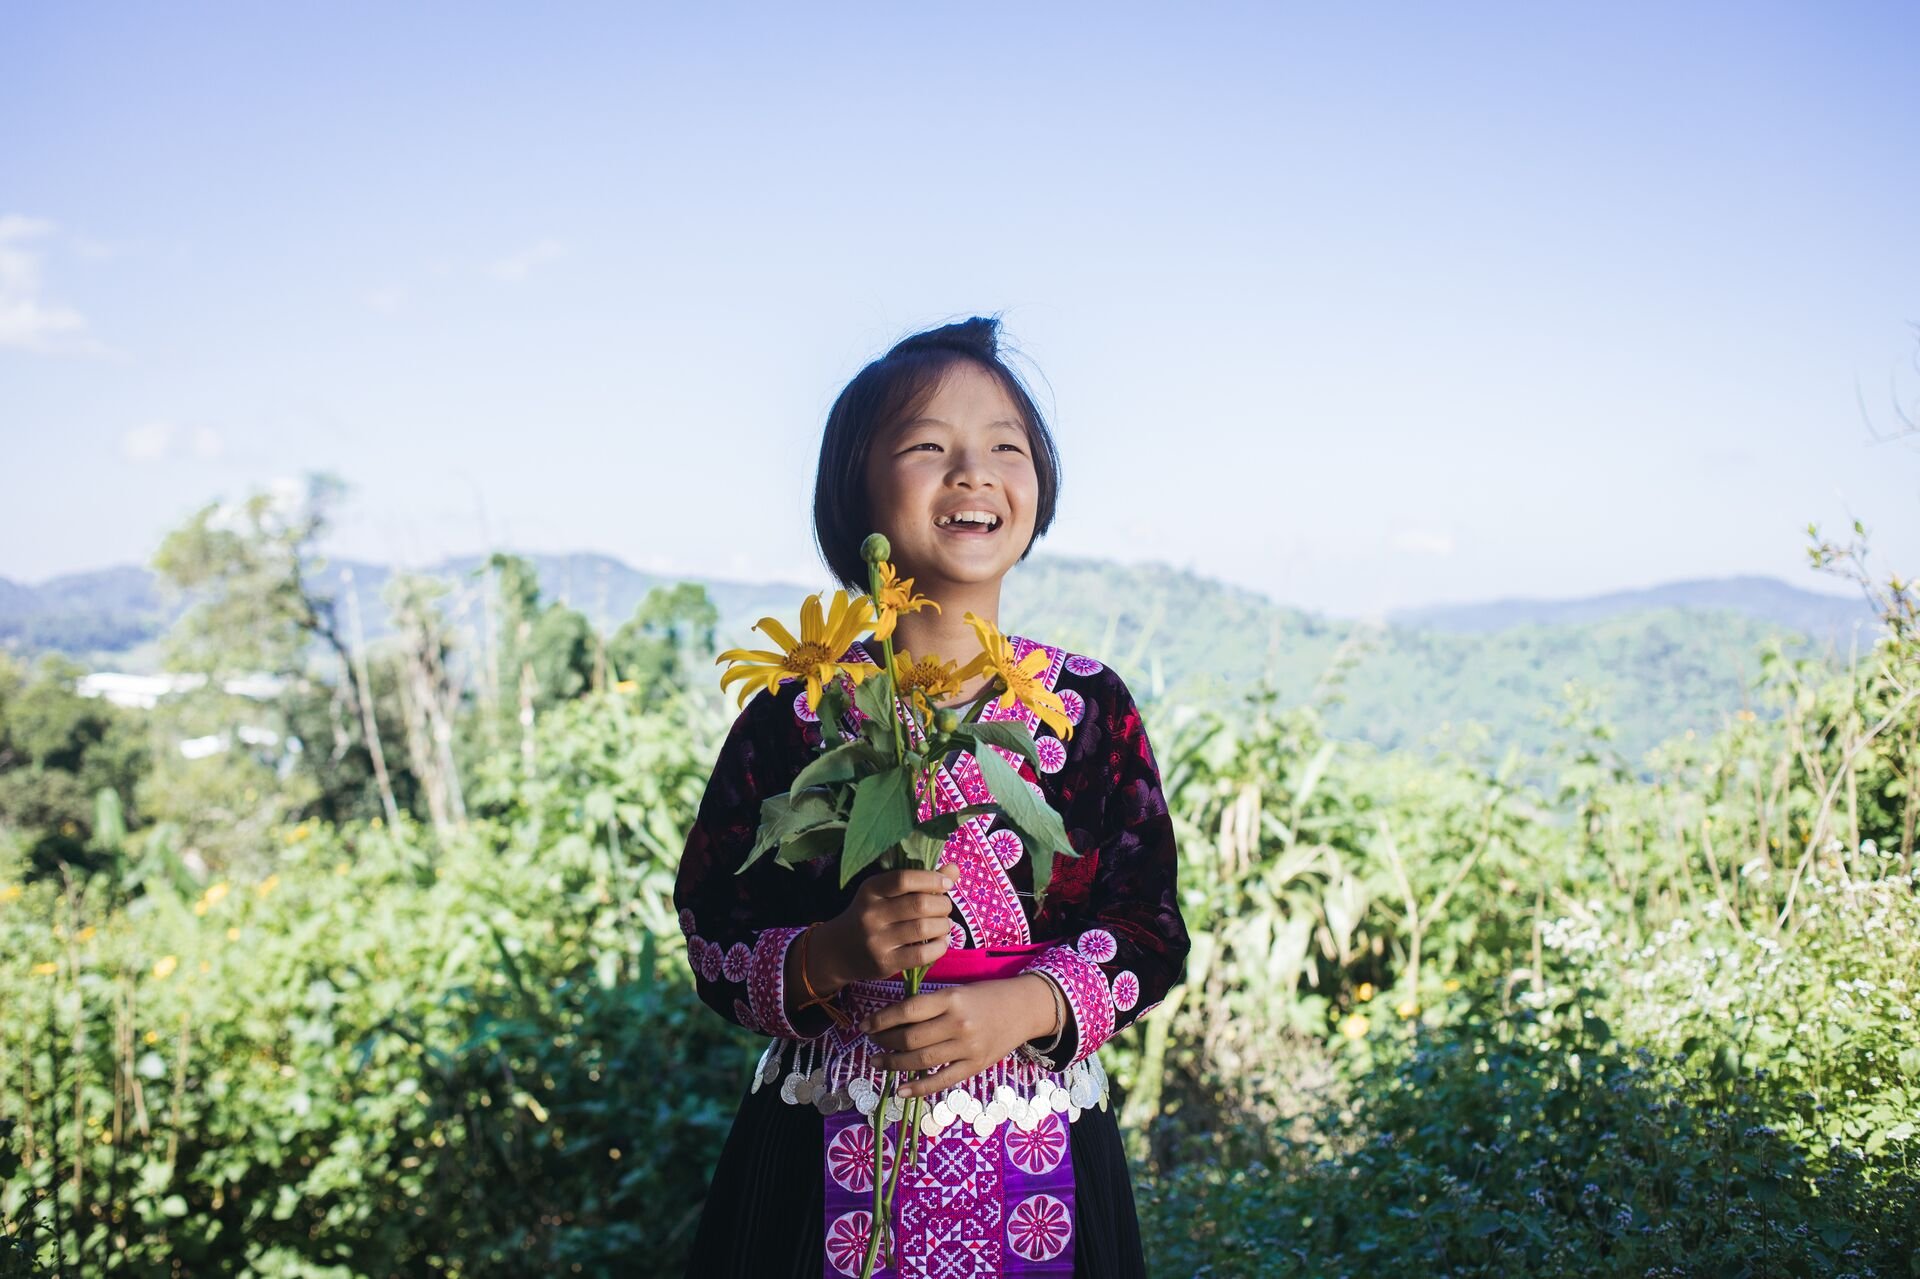 Girl smiles in a field and holds a bouquet of flowers.